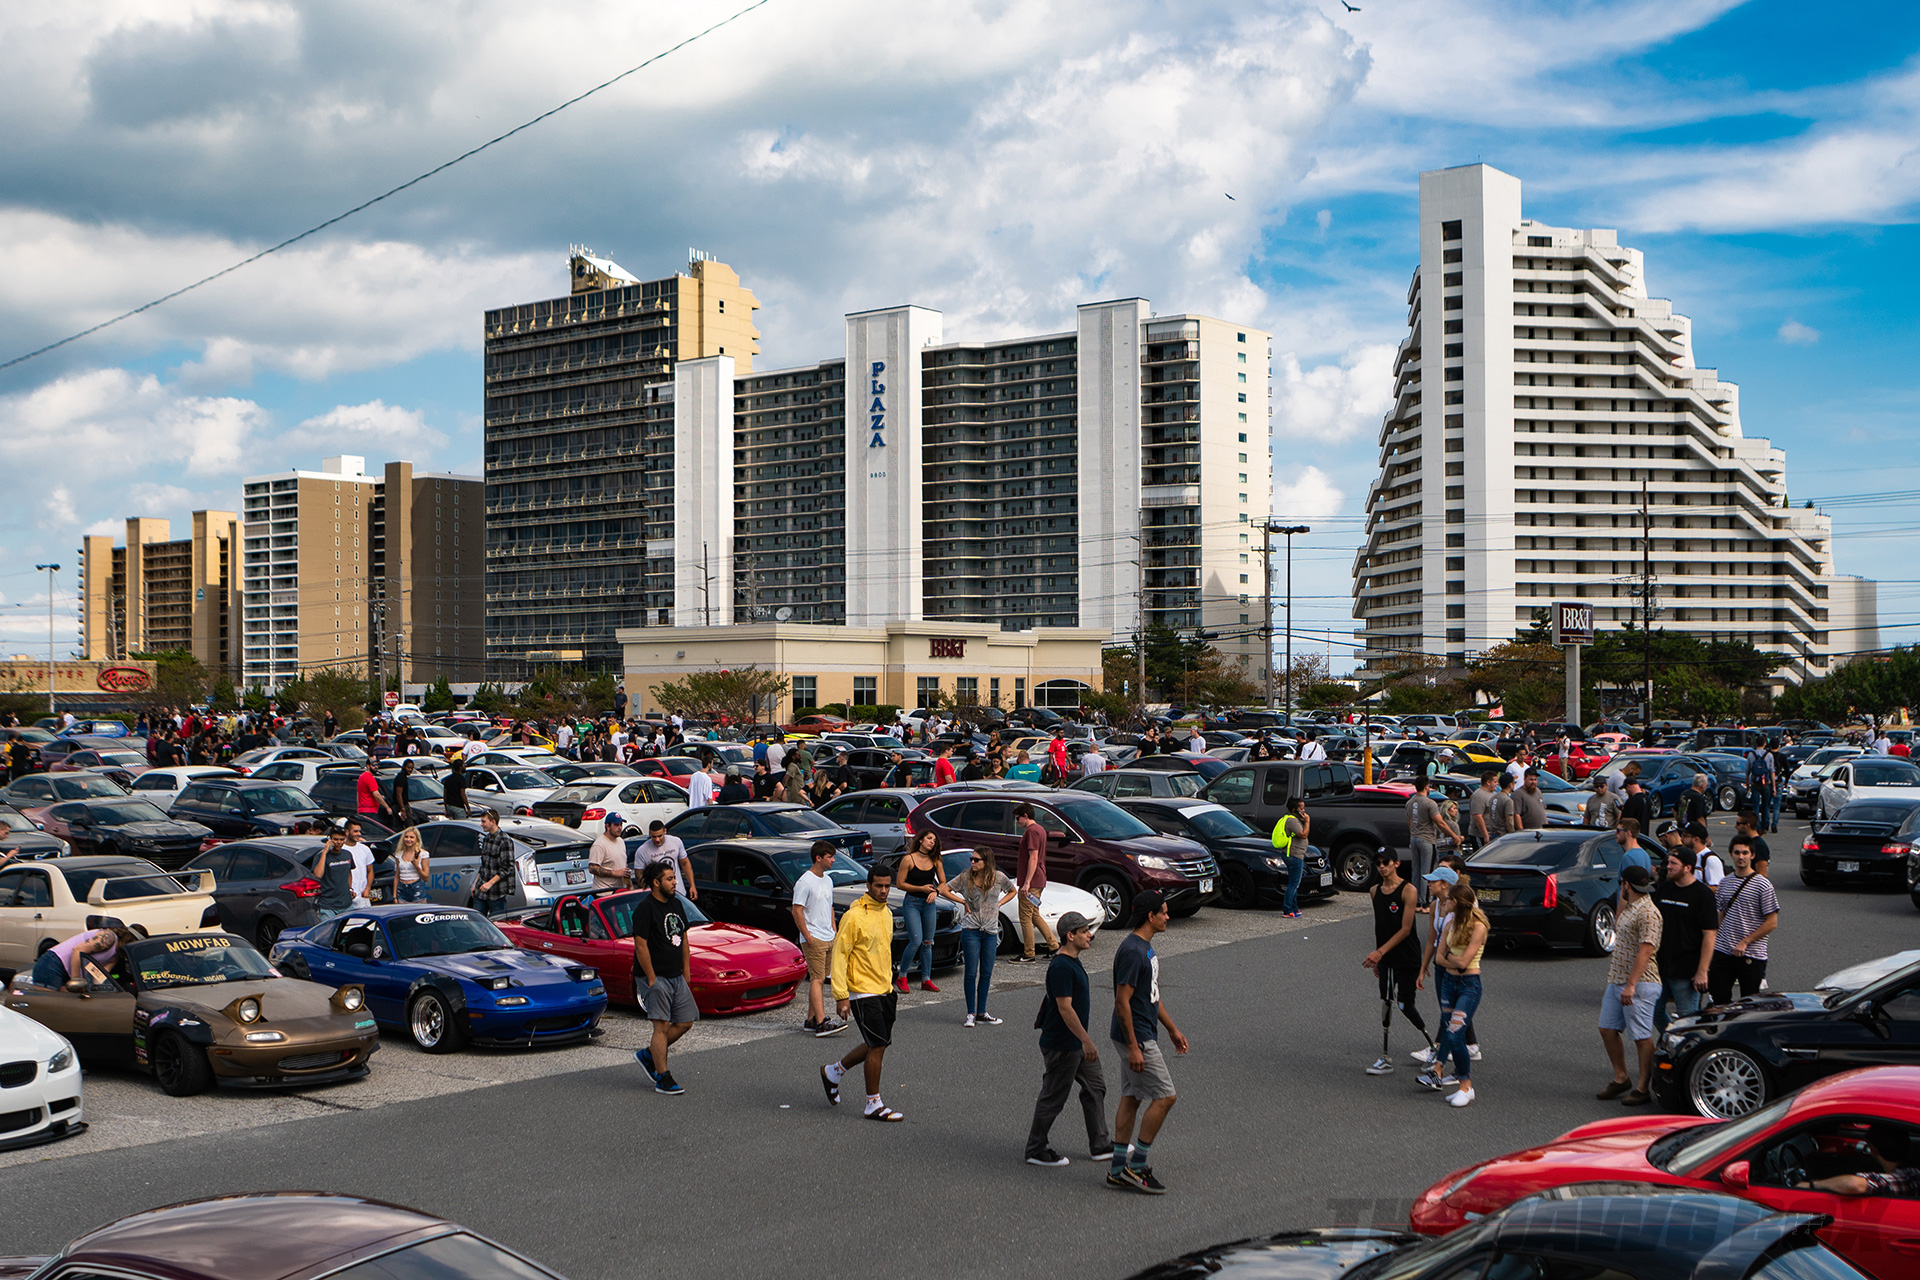 H2Oi crowd